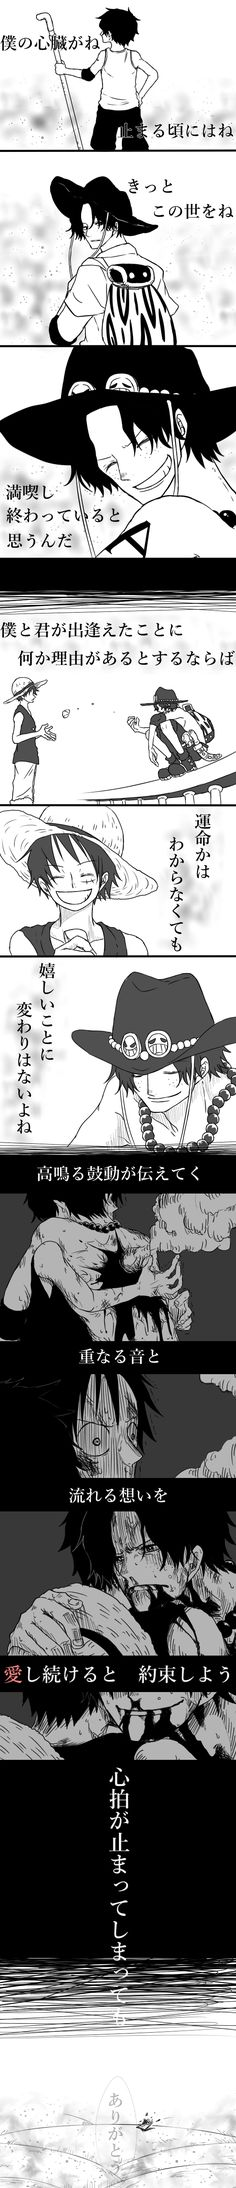 Why don't you just rip my heart out instead? That would hurt less. Monkey D. Luffy Portgas D. Ace